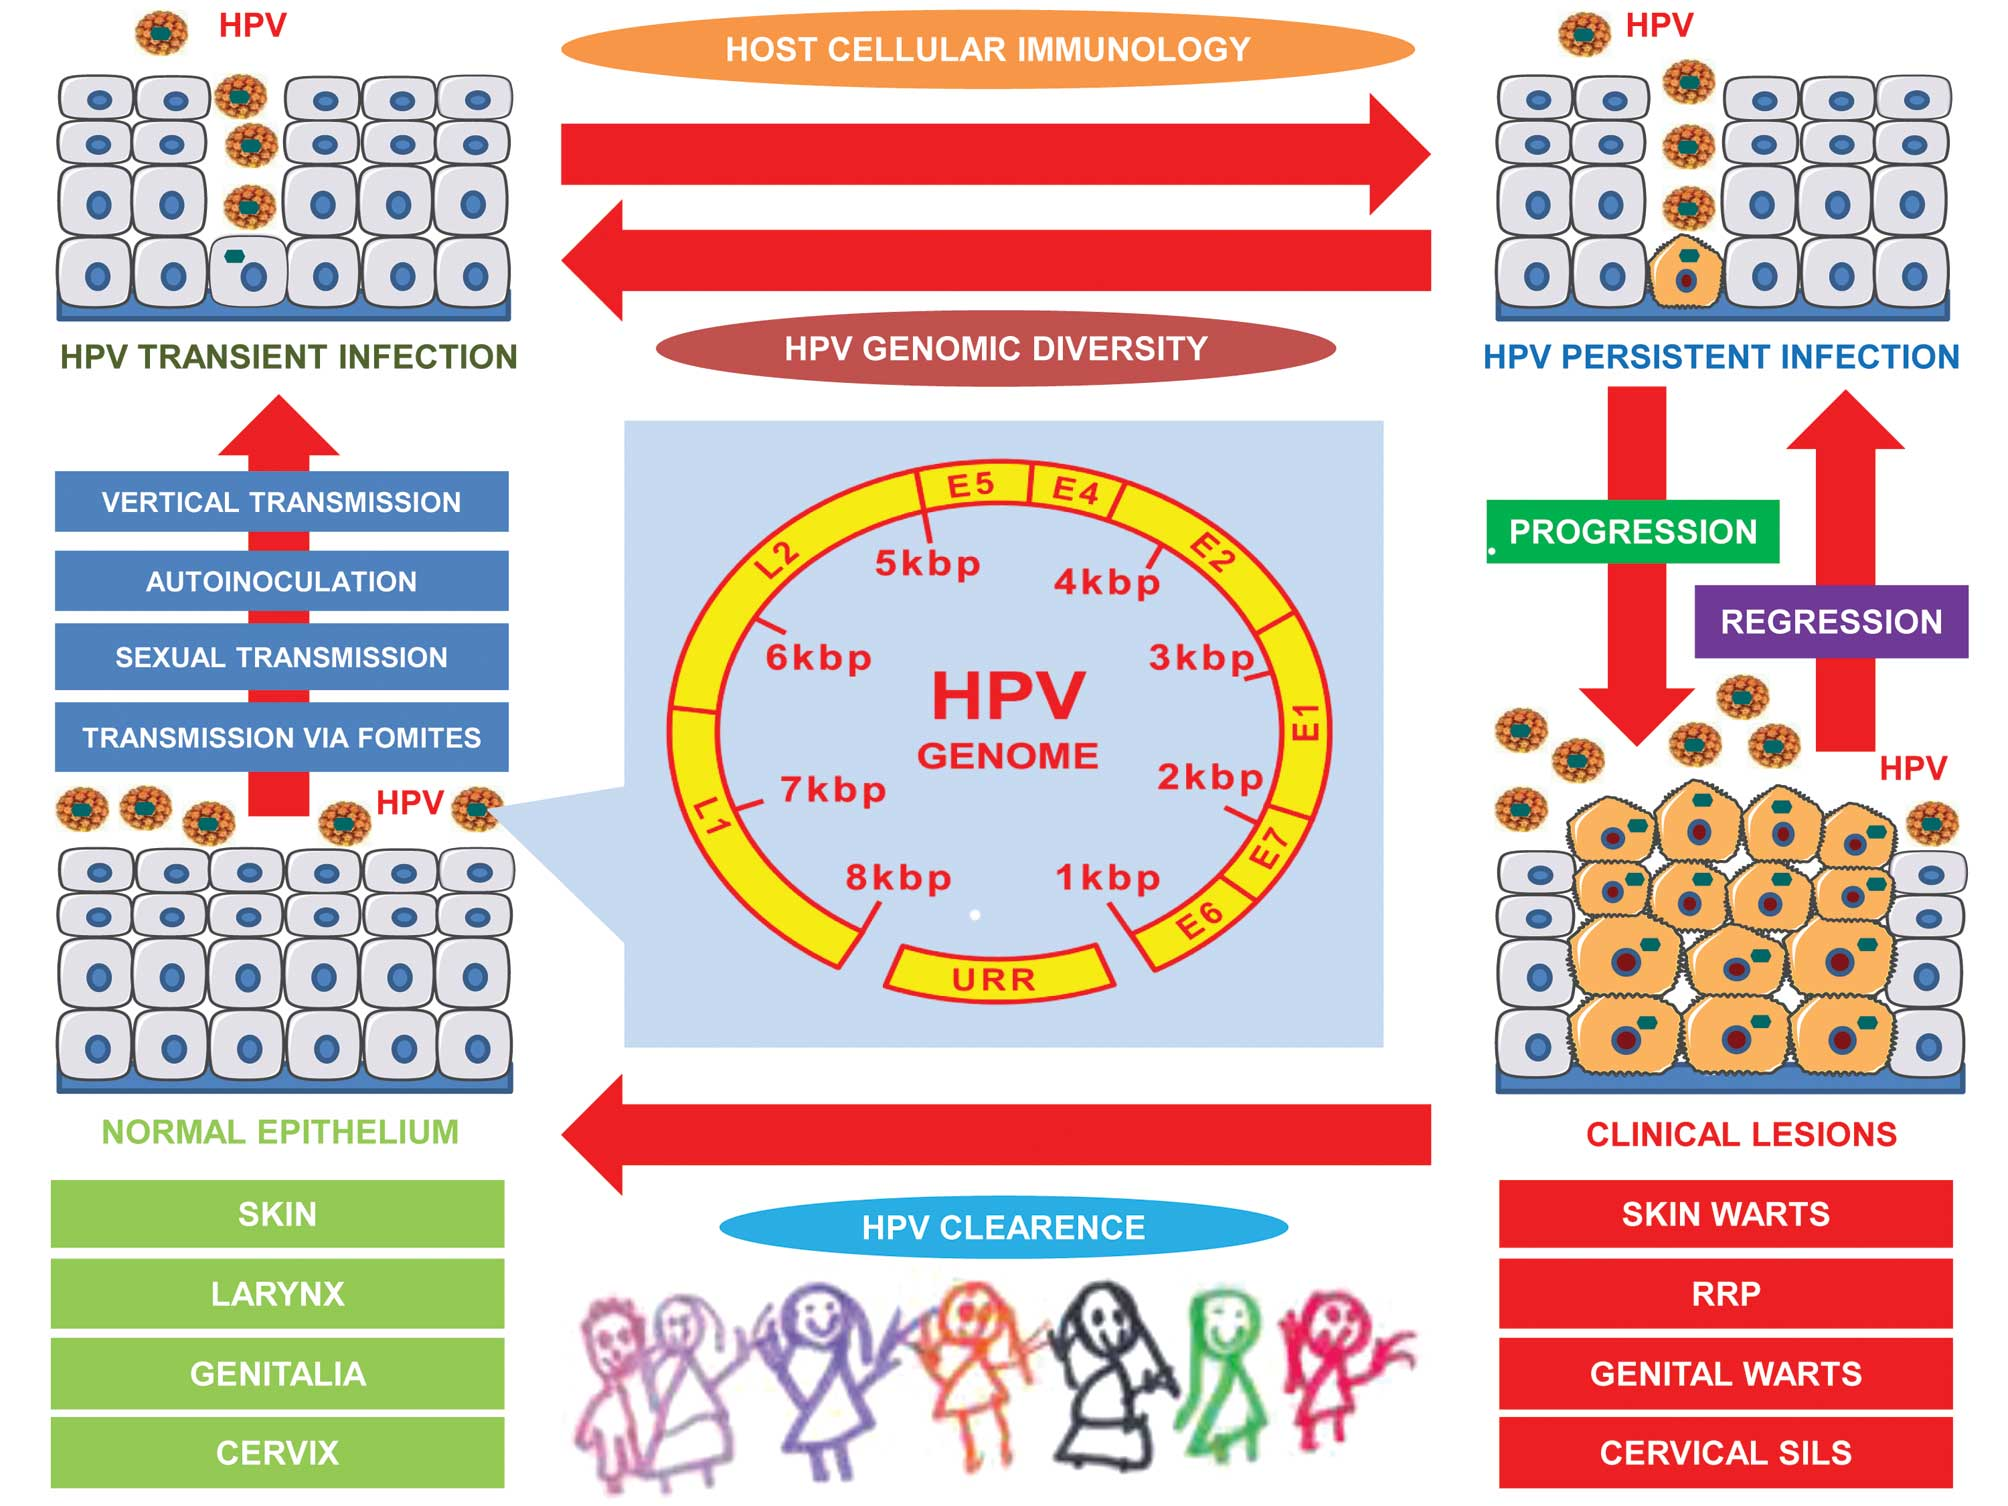 the paediatric story of human papillomavirus (review), Human Body